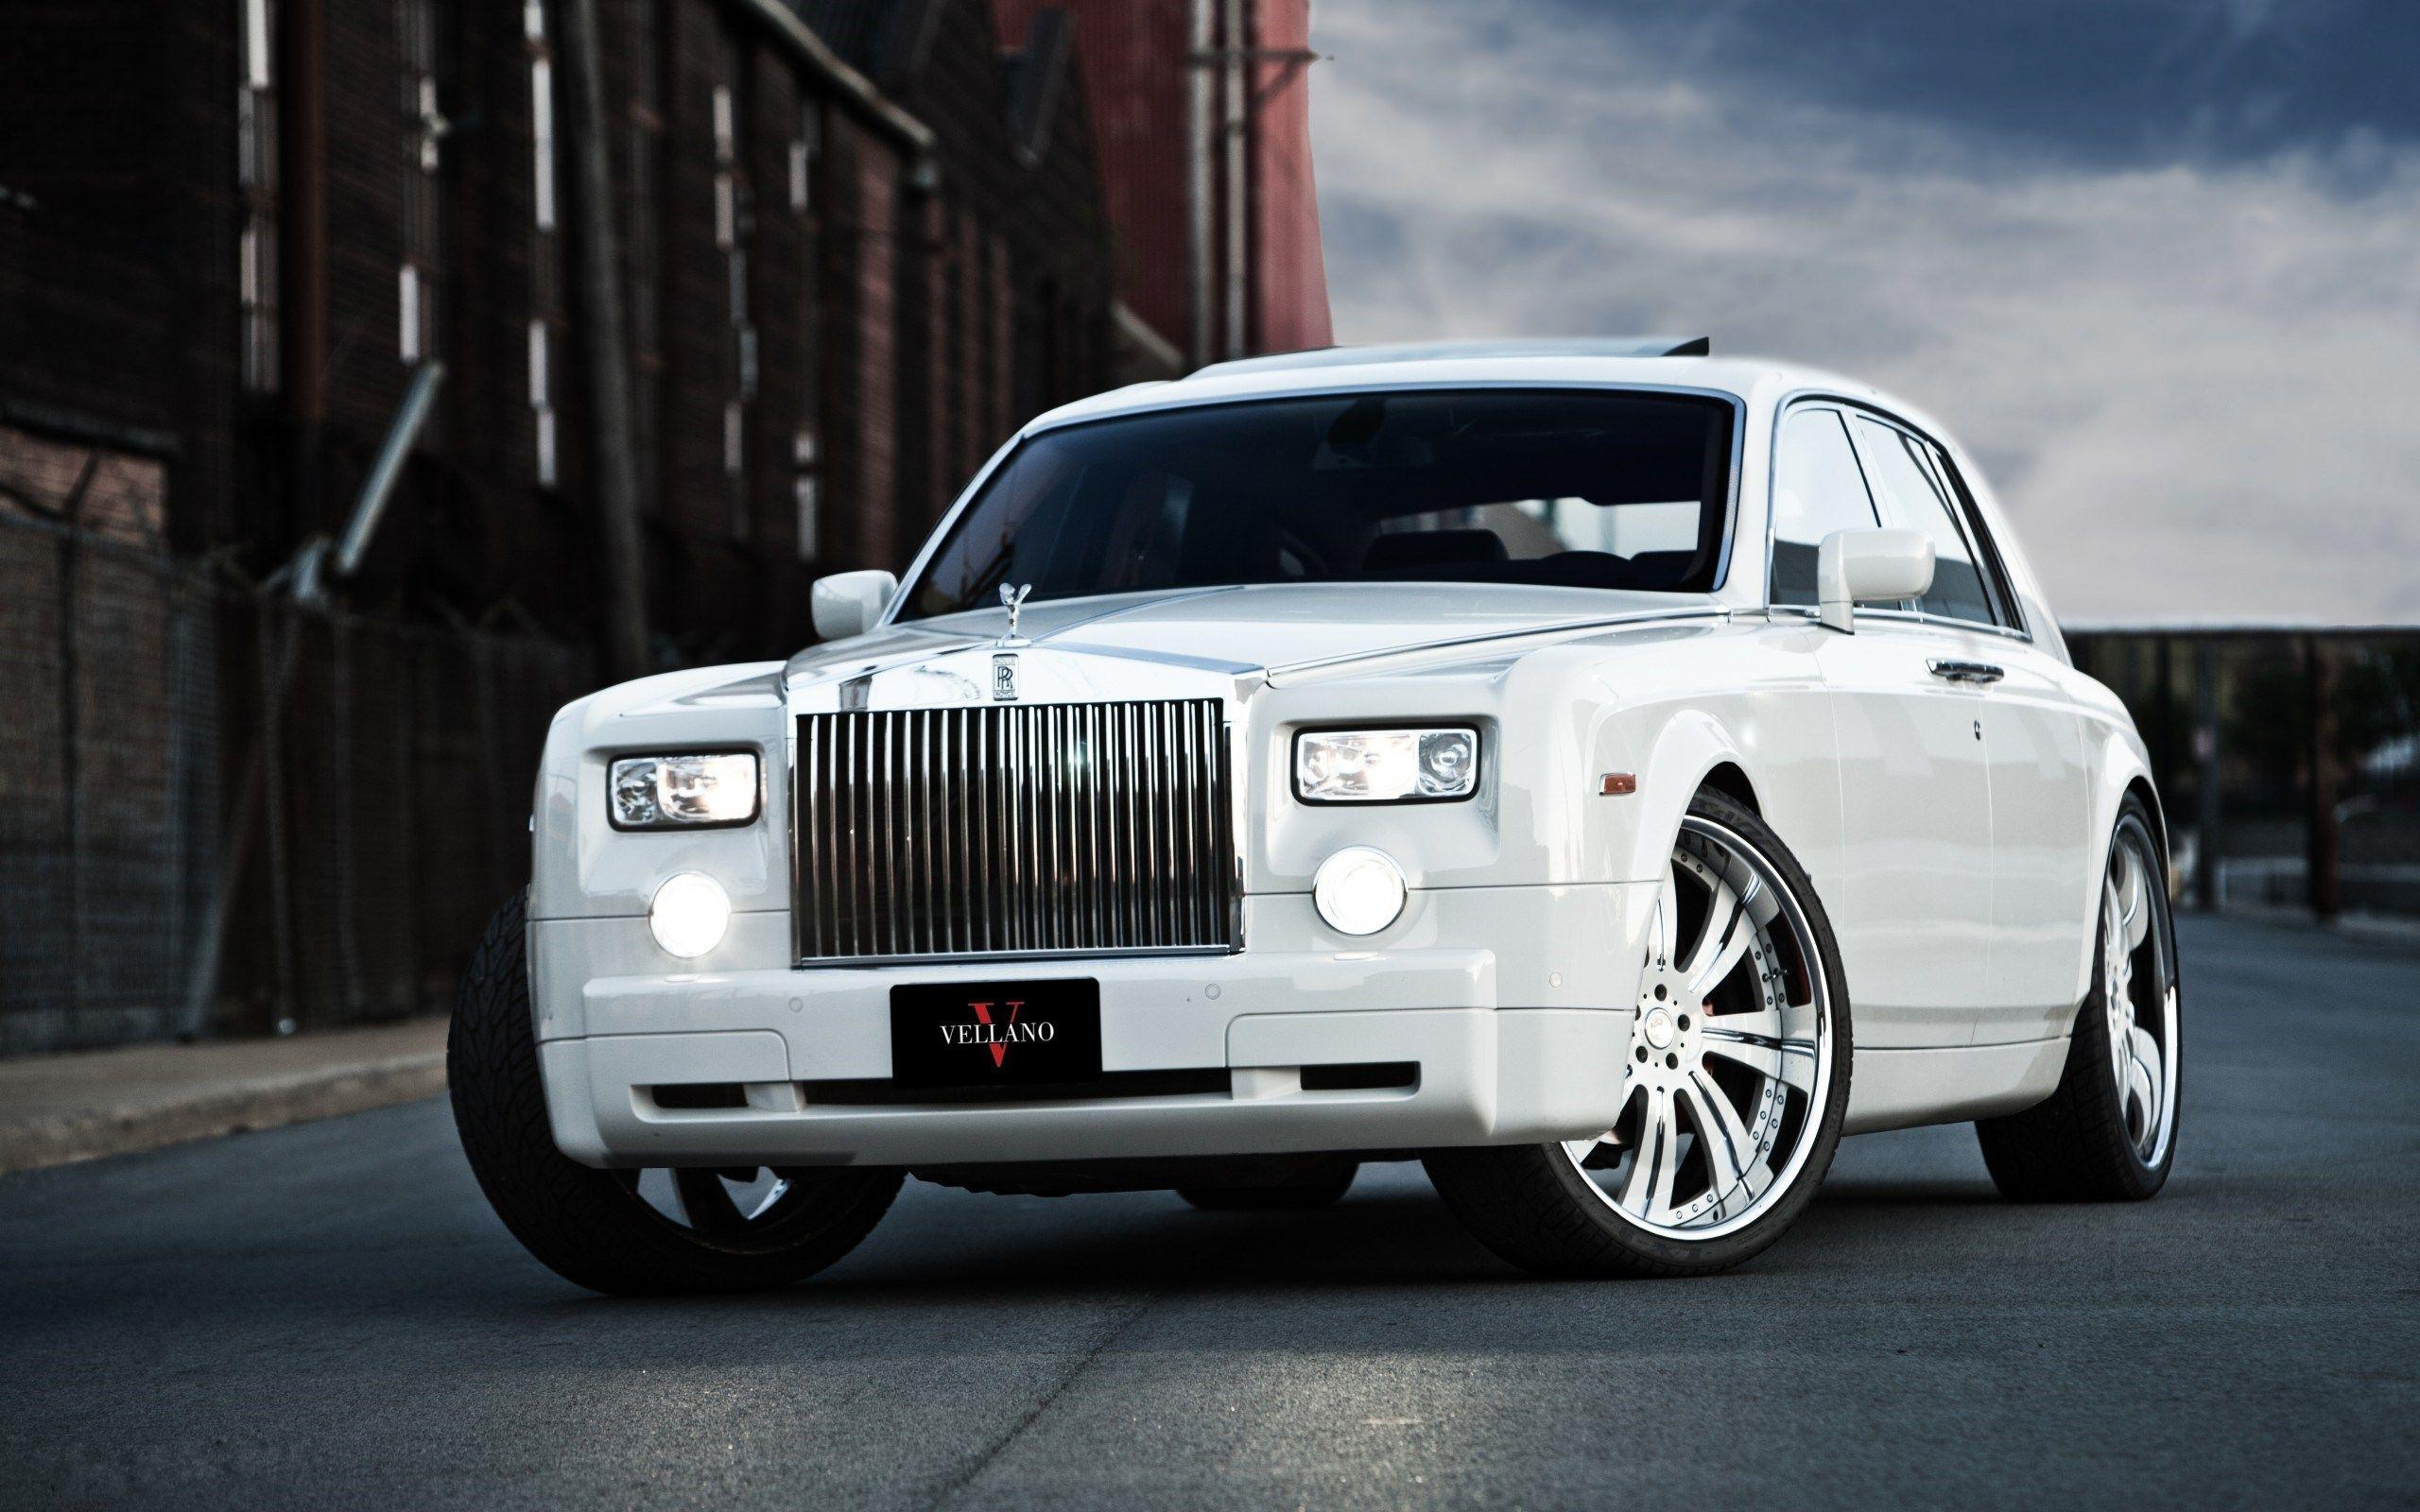 Wallpapers Rolls Royce Hd Backgrounds Charlie With Phantom Car